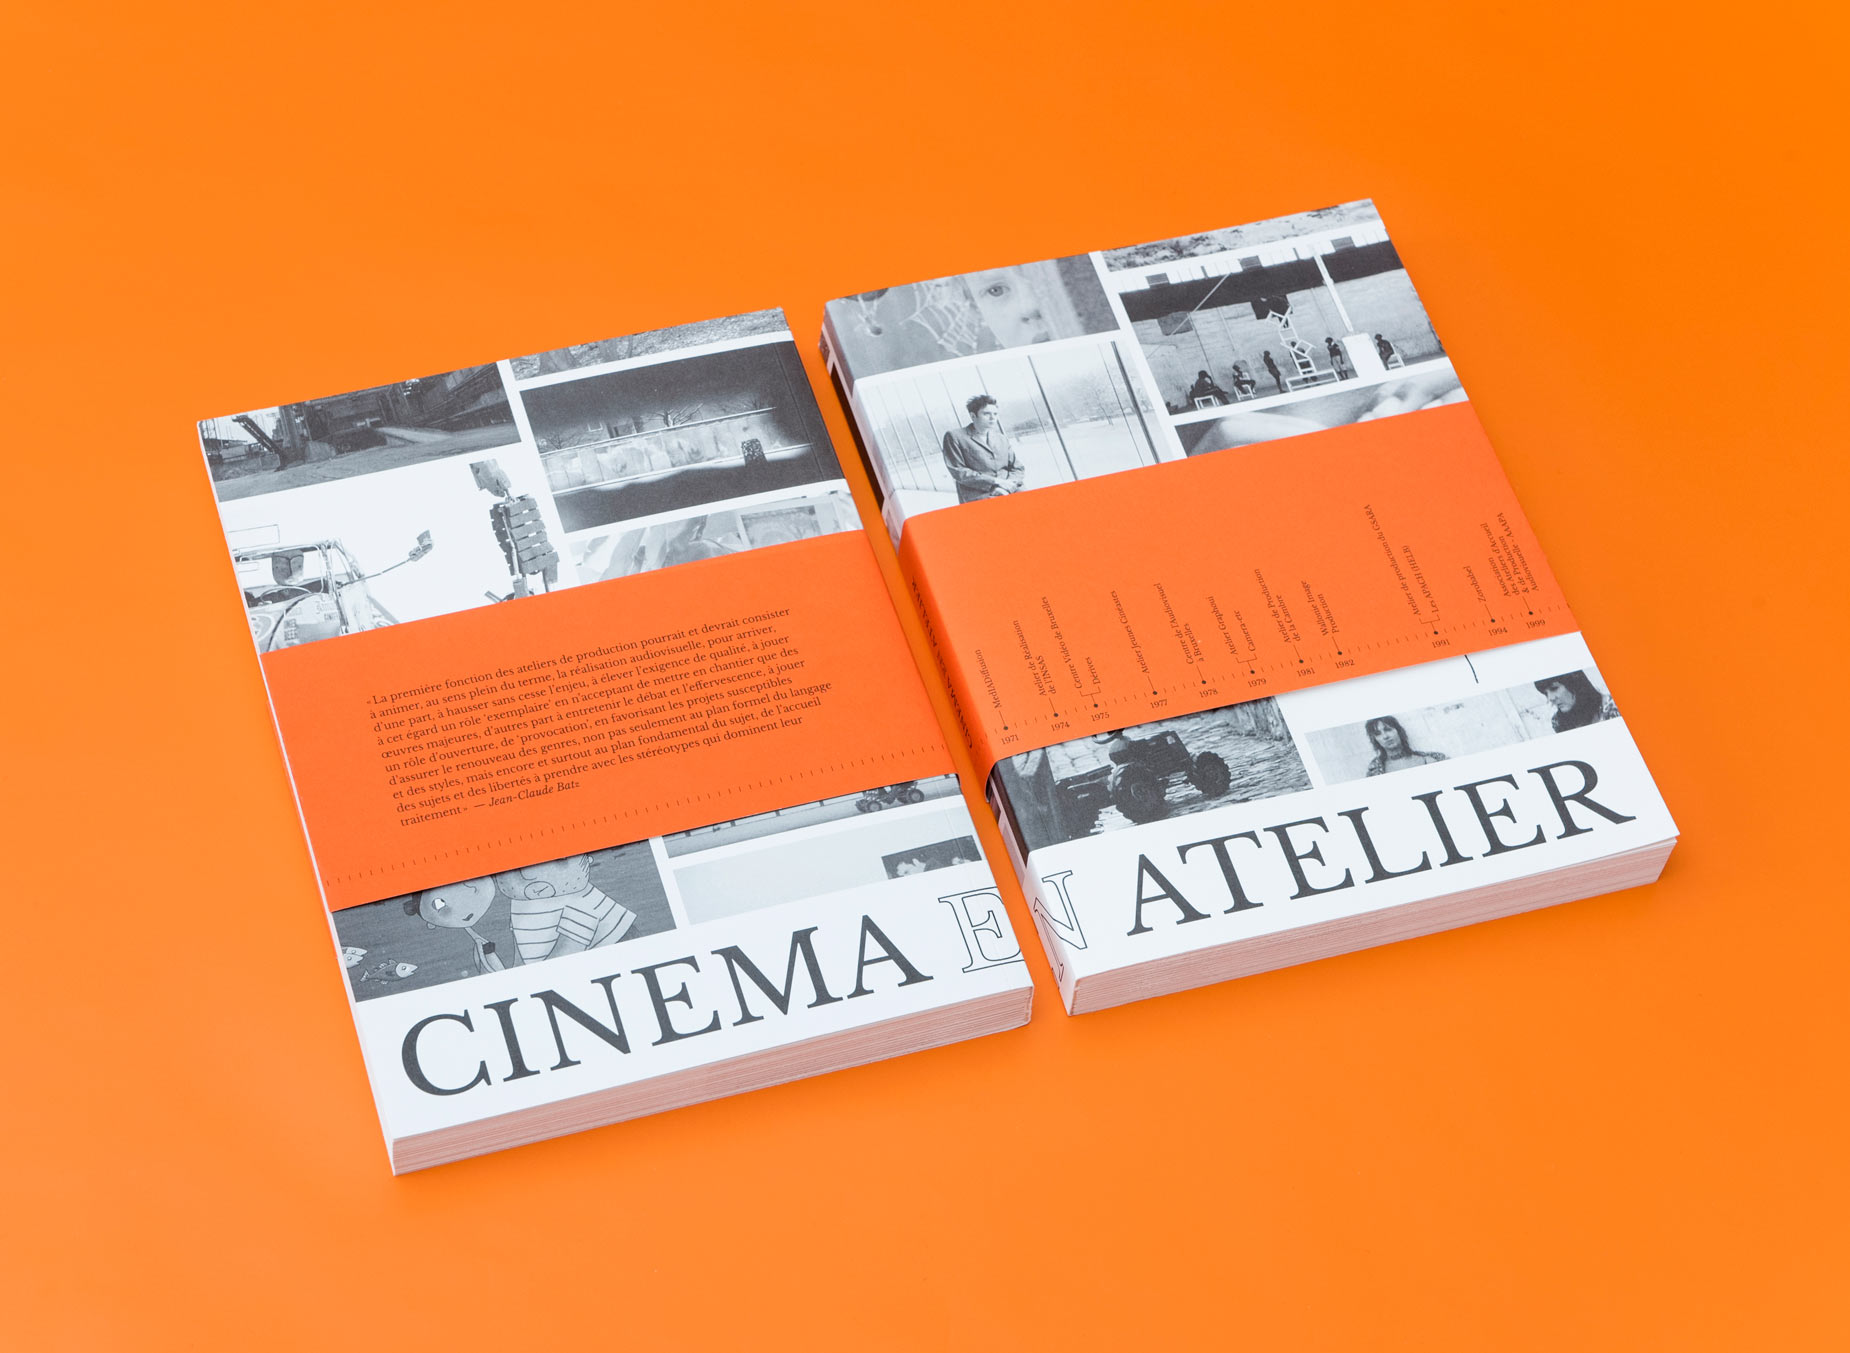 Case: Cinema En Atelier